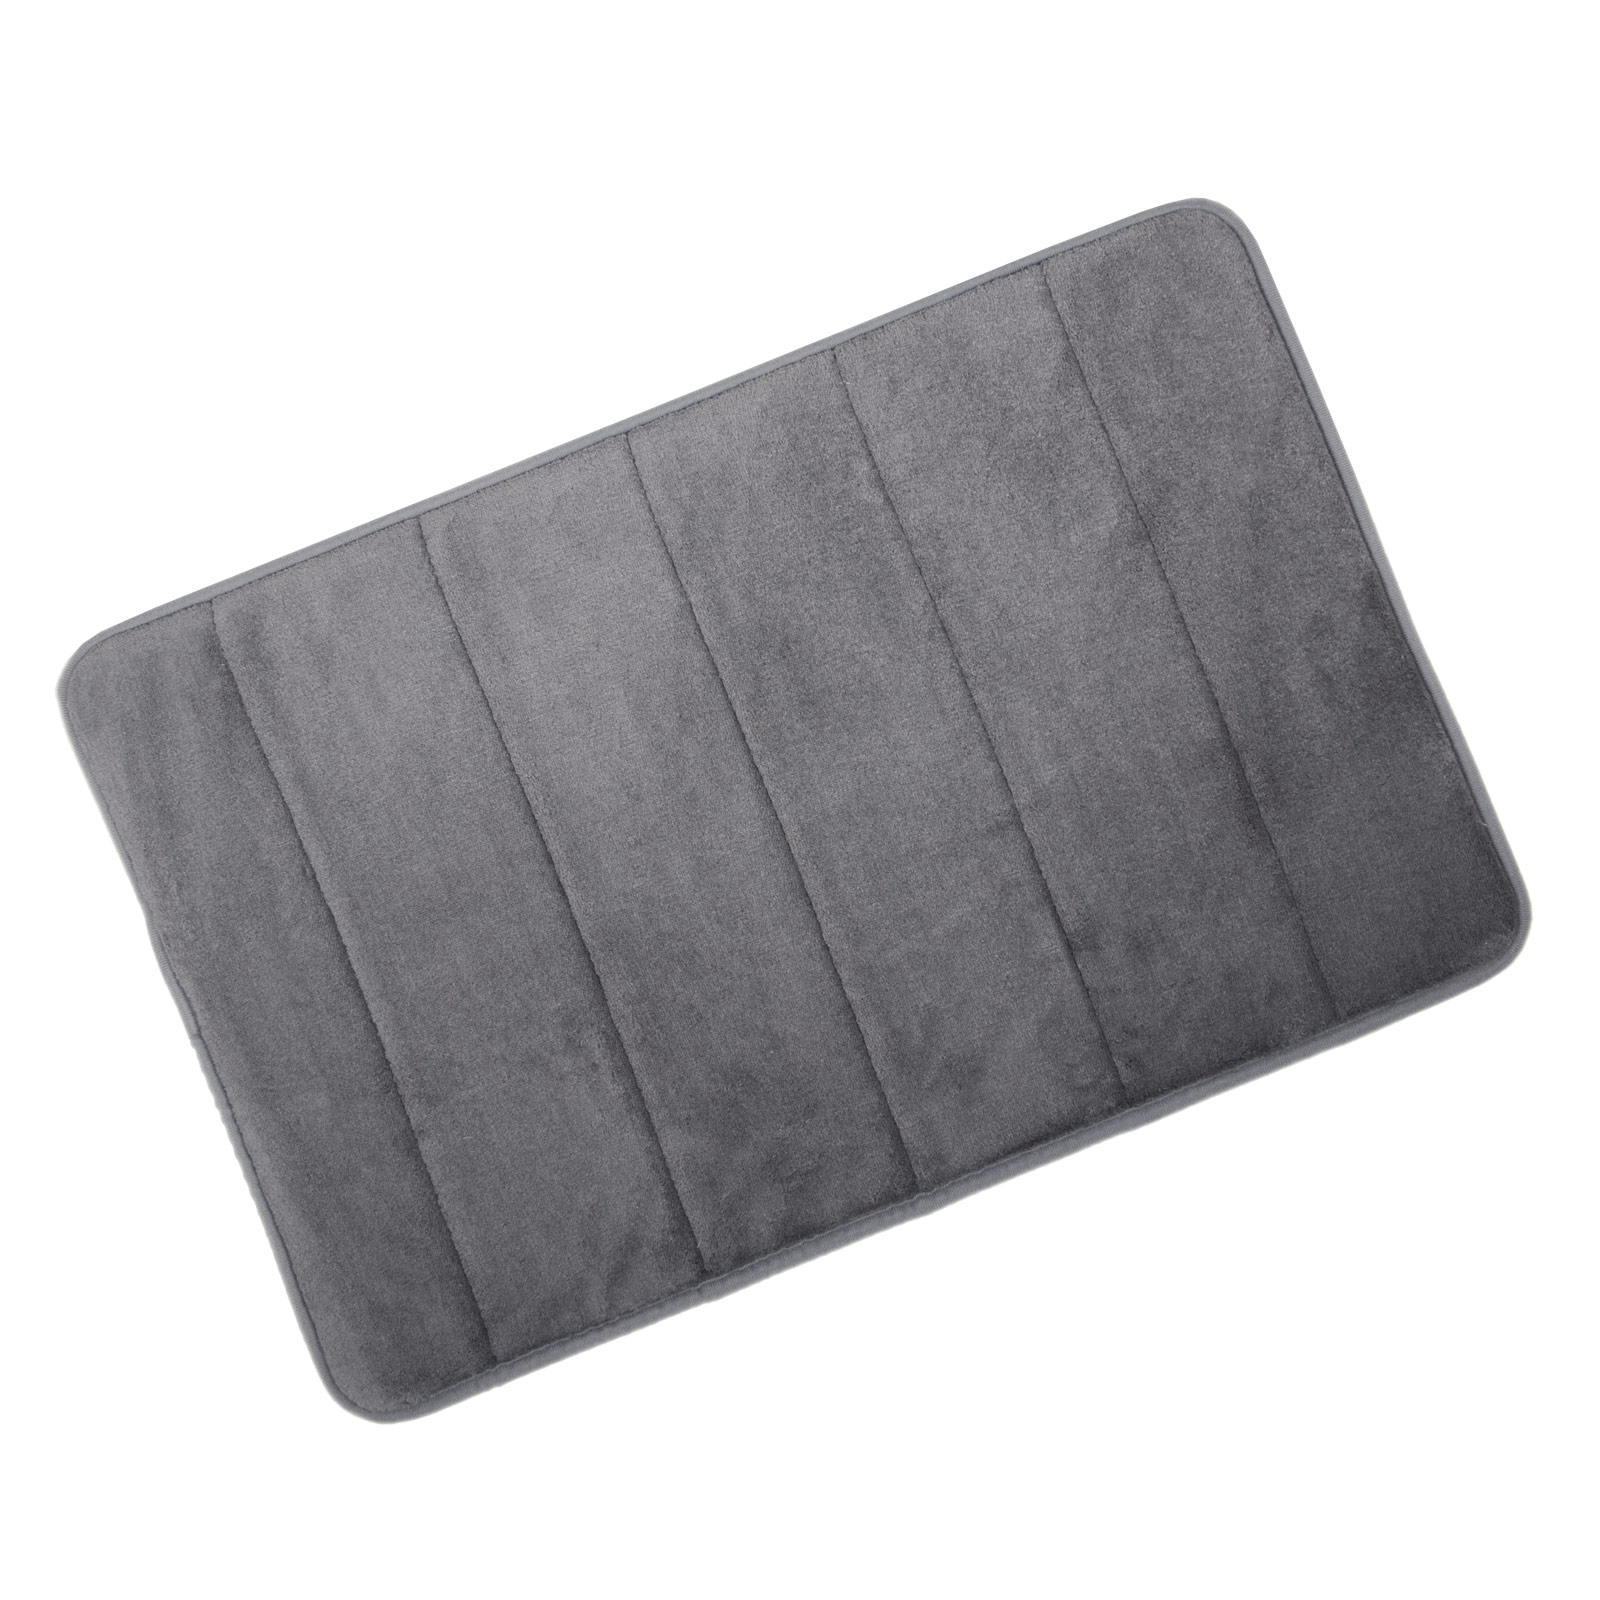 Microfibre Memory Foam Bathroom Shower Bath Mat With Non Slip Back